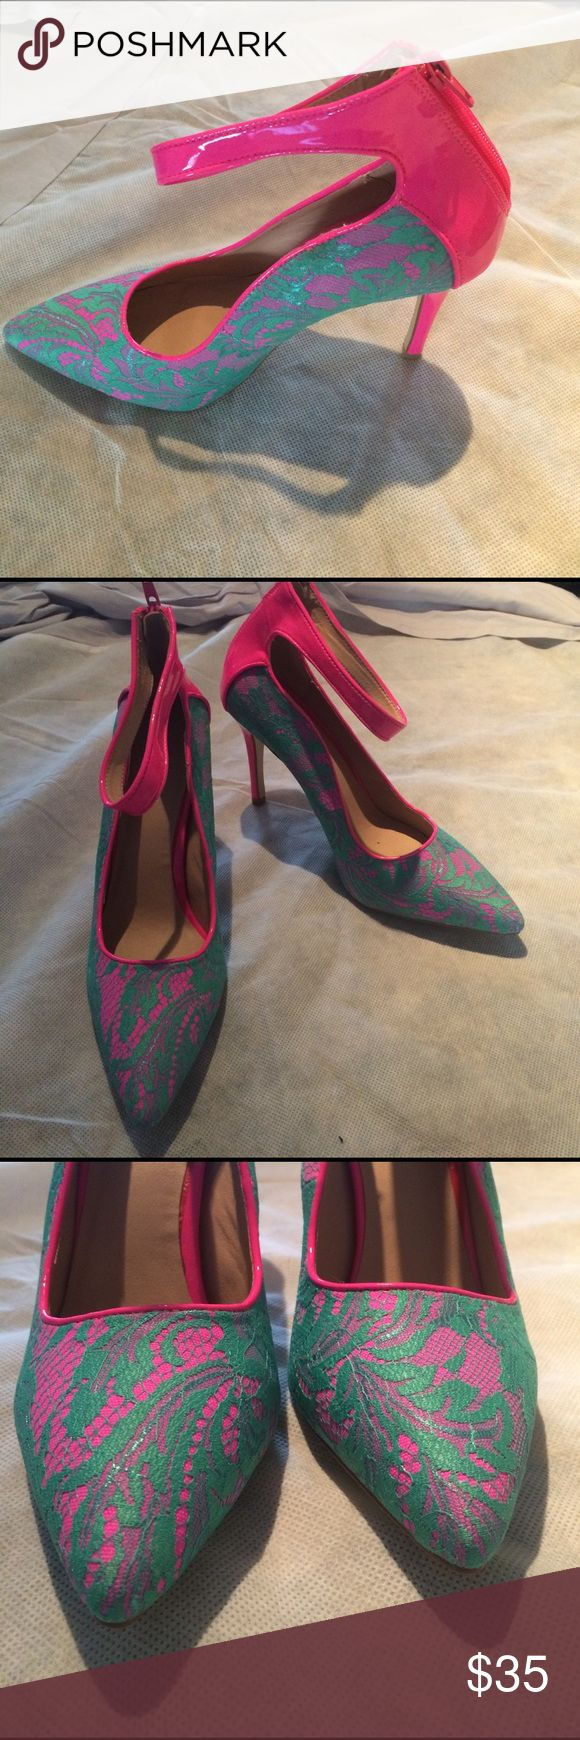 NWOT Shoedazzle Hot Pink & Green Lace Heels These have never been worn. There are a couple of tiny nicks on the zipper pull from storage. See pics. Shoe Dazzle Shoes Heels